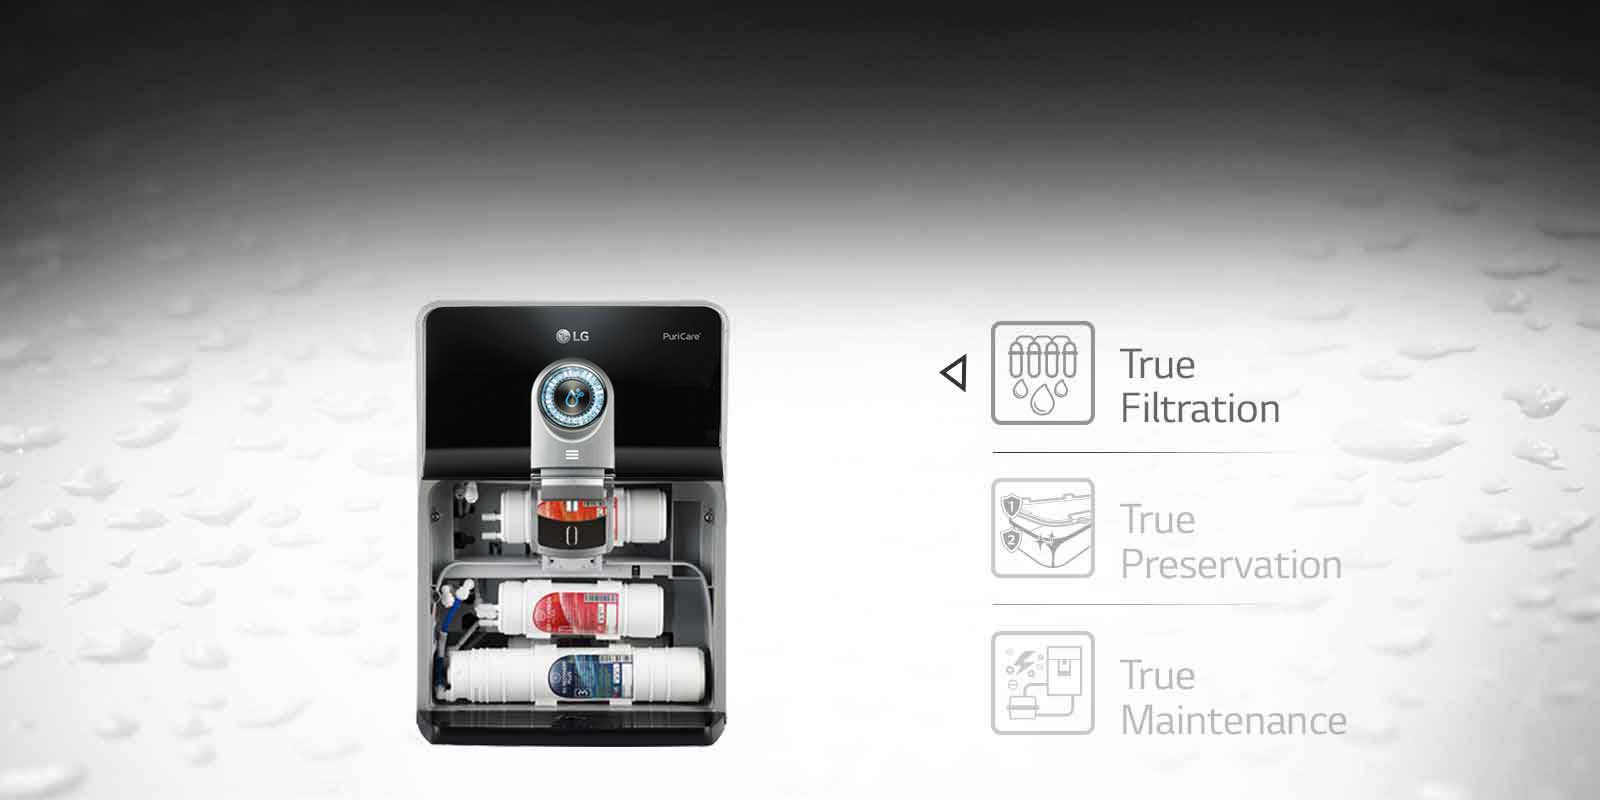 LG Water Purifier True Filteration